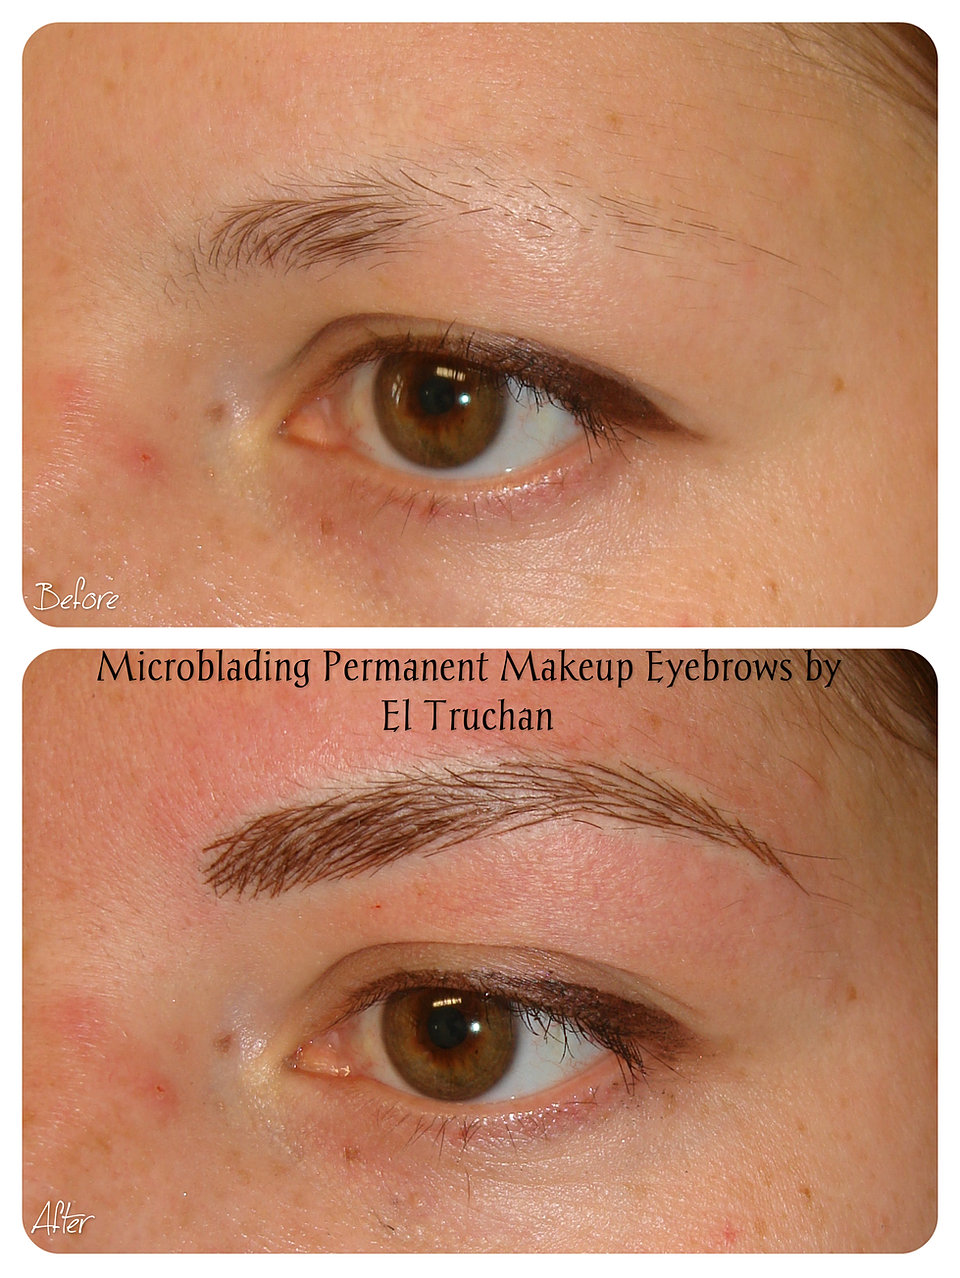 Microblading & Permanent Makeup Eyebrows Tattoo by El Truchan, London: http://www.perfectdefinition.co.uk/eyebrow-treatments-in-london#!